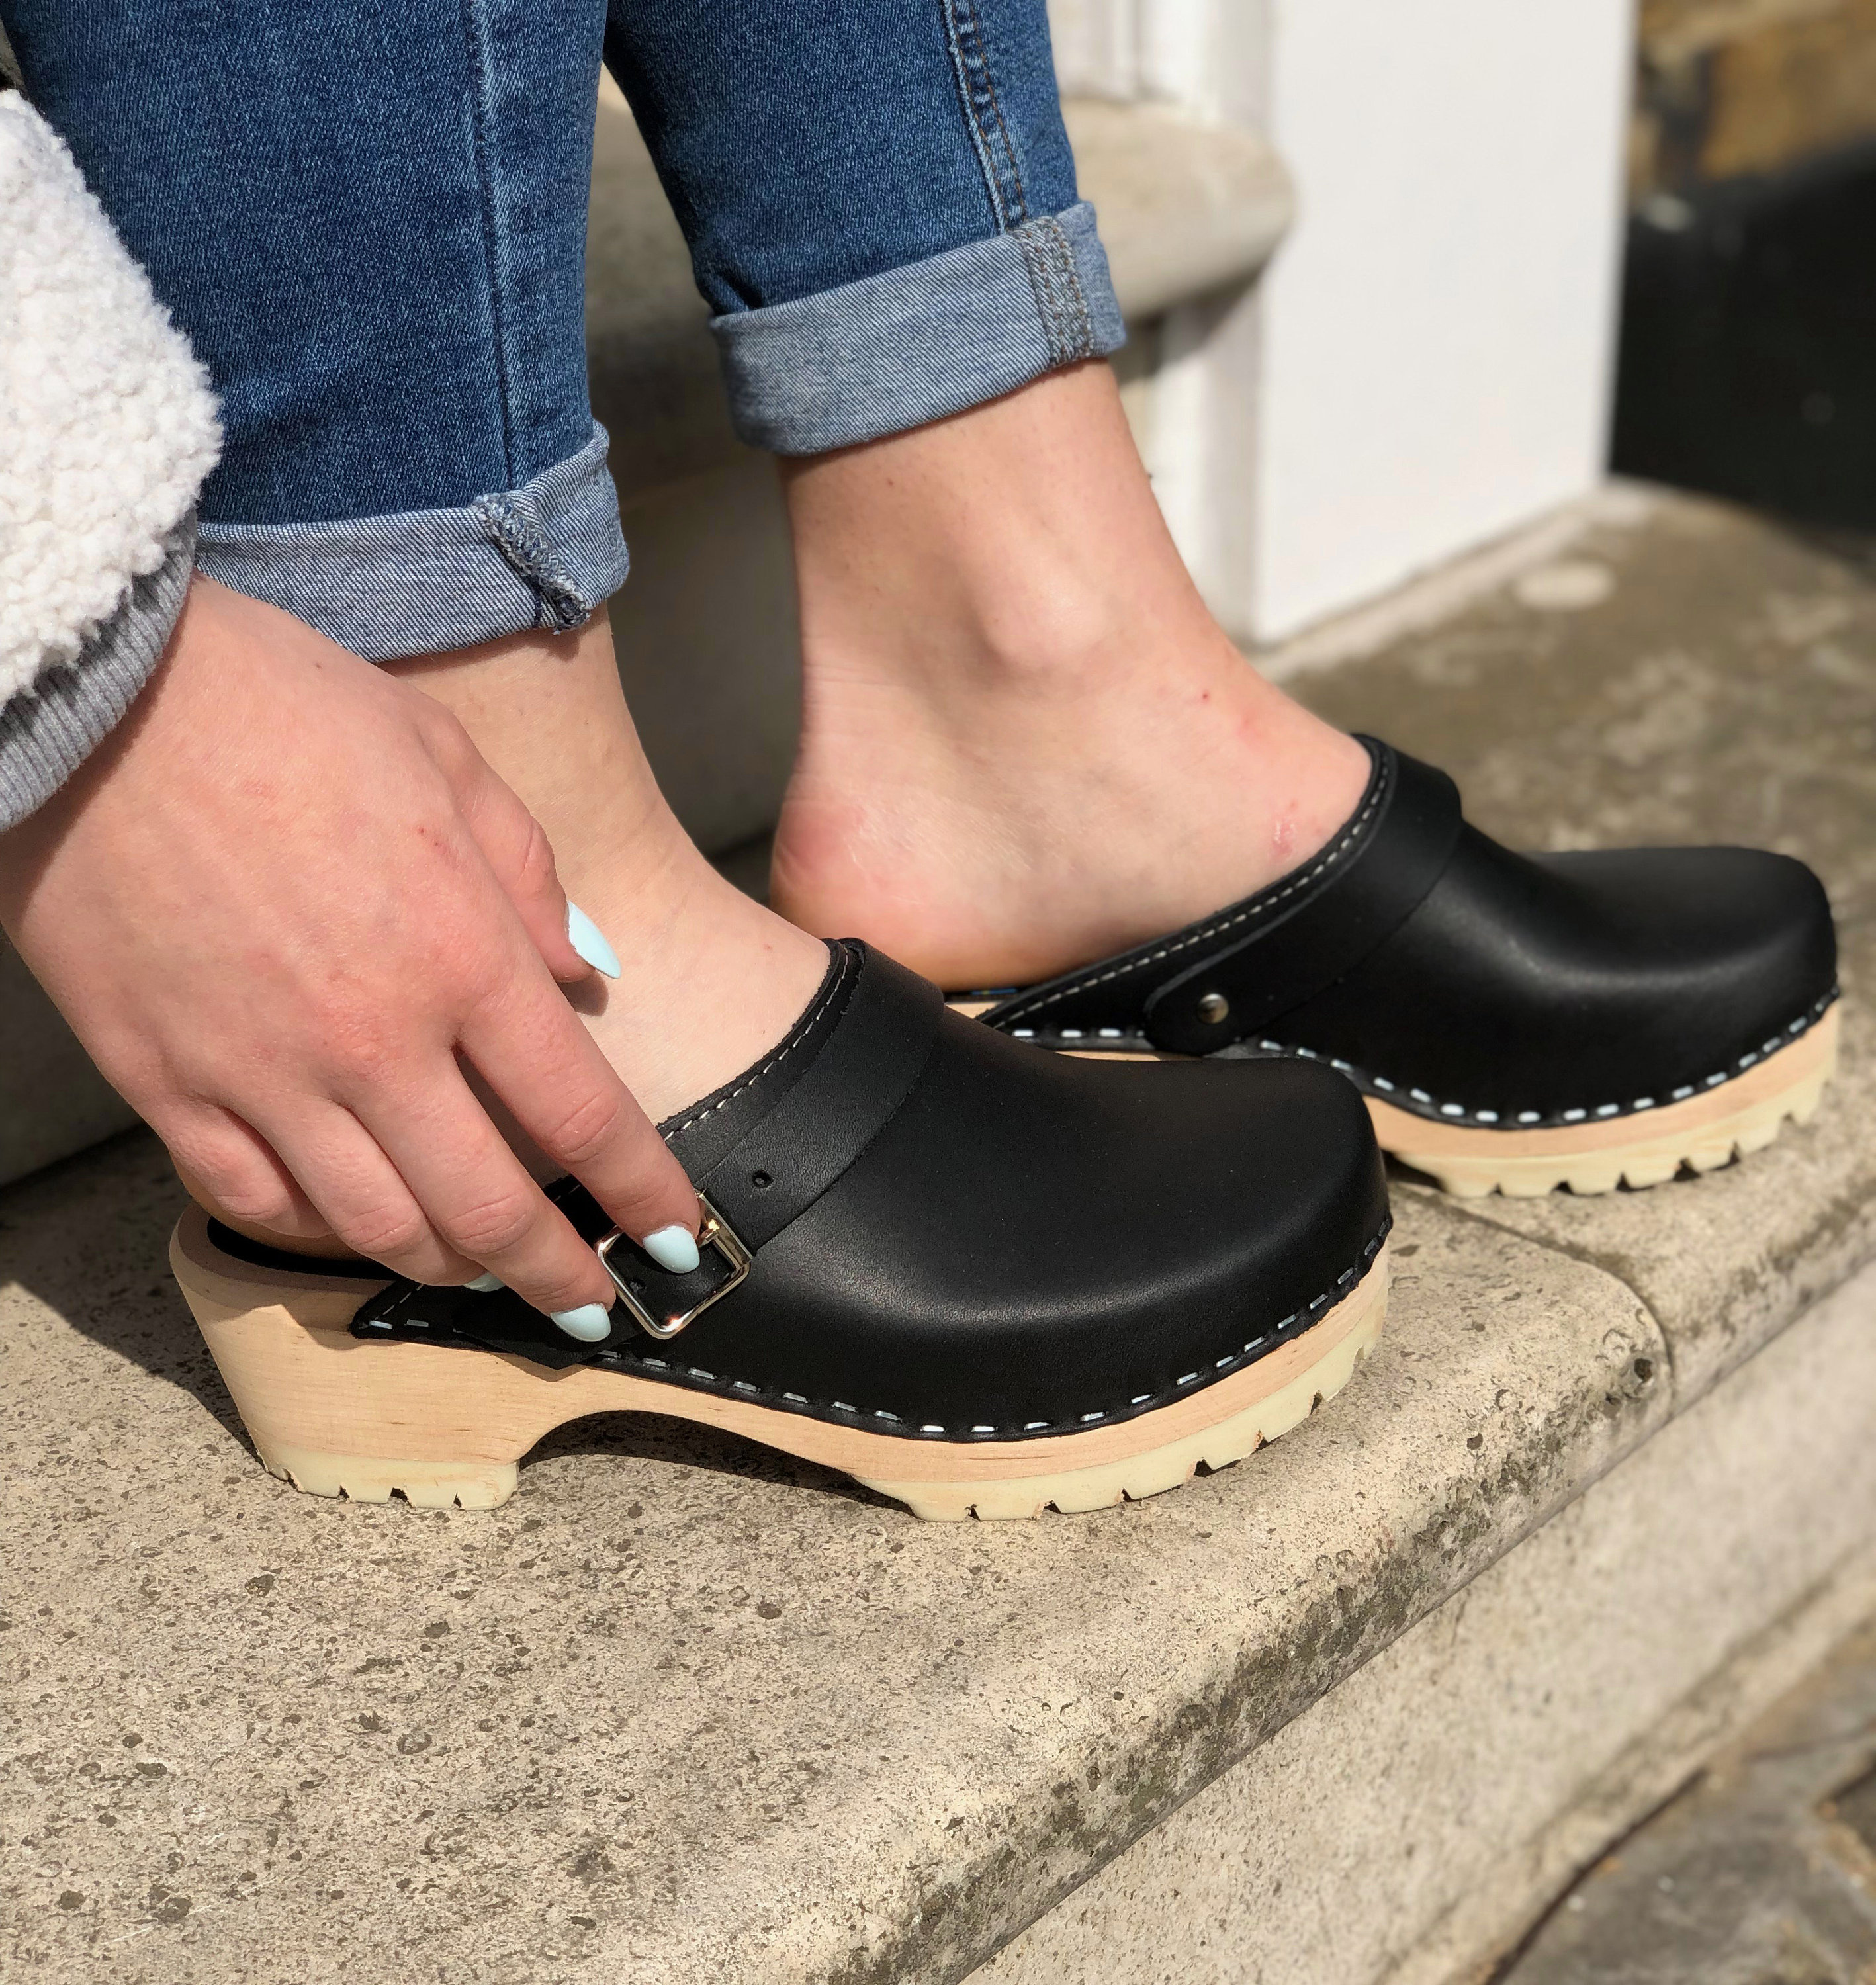 c4958d8649ad0 NEW Swedish Clogs Classic Black Leather on Tractor Base by Lotta from  Stockholm / Wooden Clogs / Handmade / Mules / Low Heel Shoes / Sweden